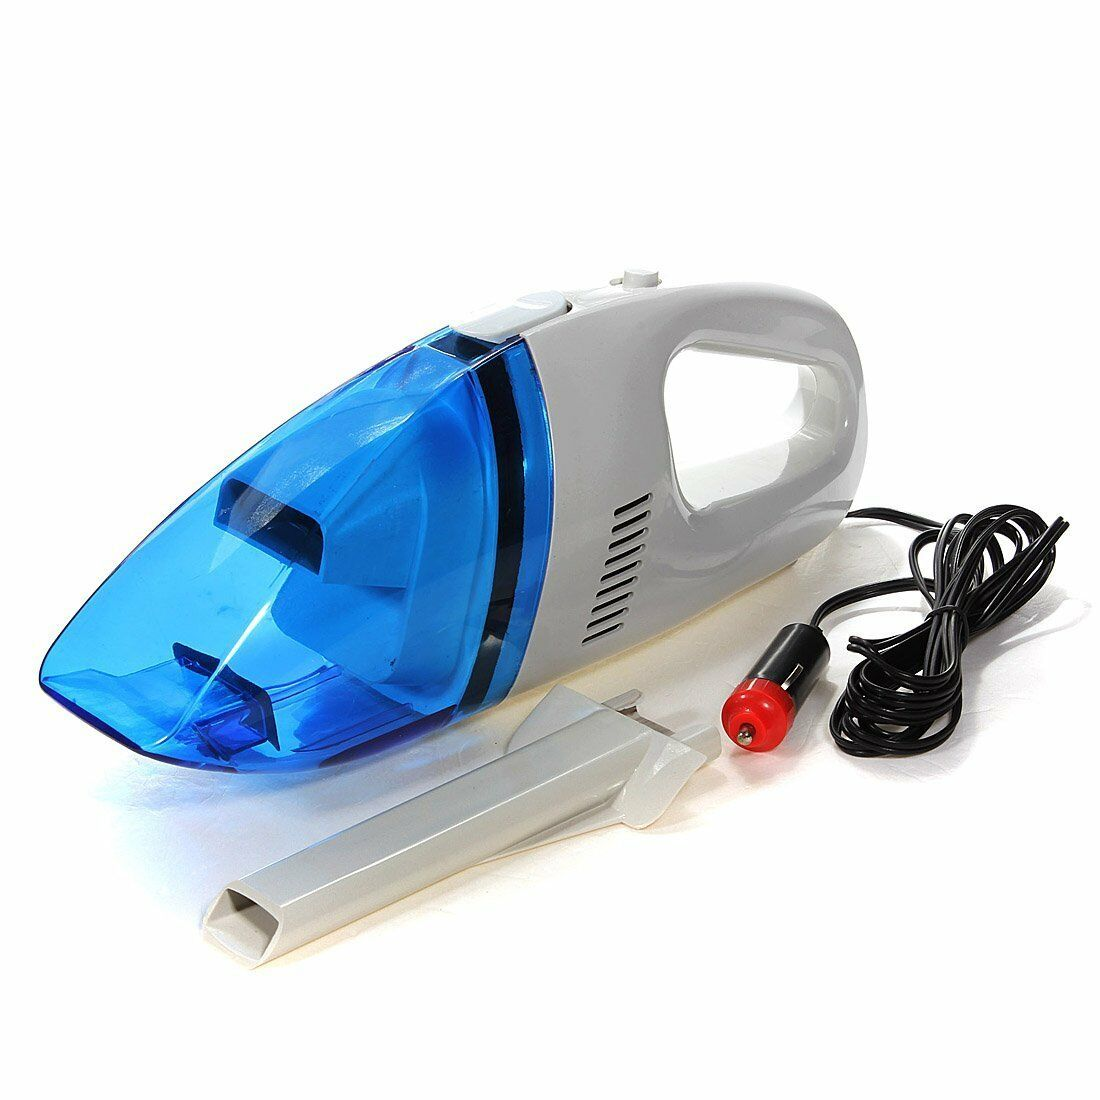 Mini Car Vacuum >> Details About 12v Wet Dry Portable Mini Car Vacuum Cleaner Vehicle Auto Handheld High Powered